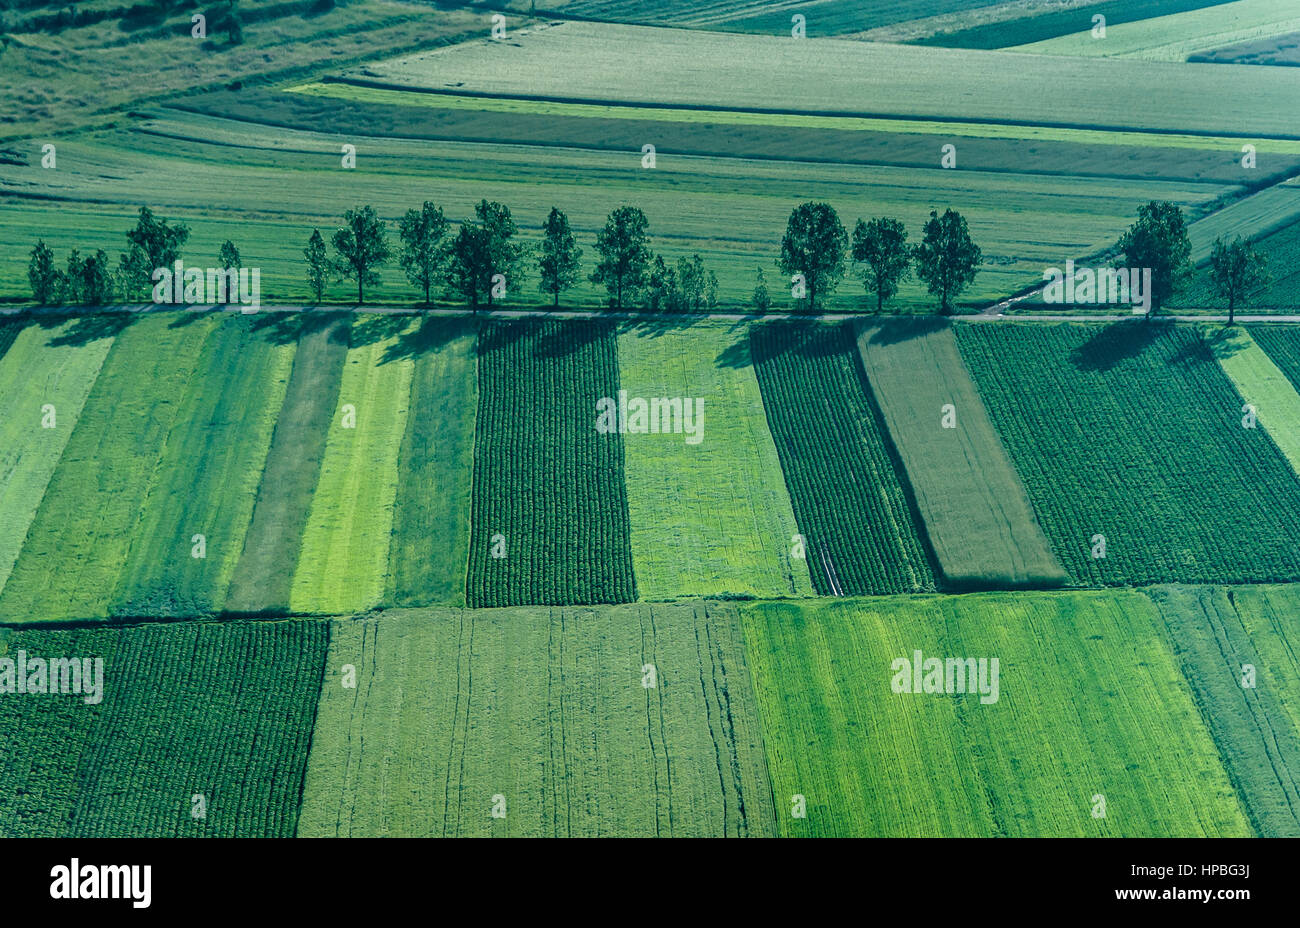 Bird's Eye View of the Fields and Agricultural Parcel. Stock Photo